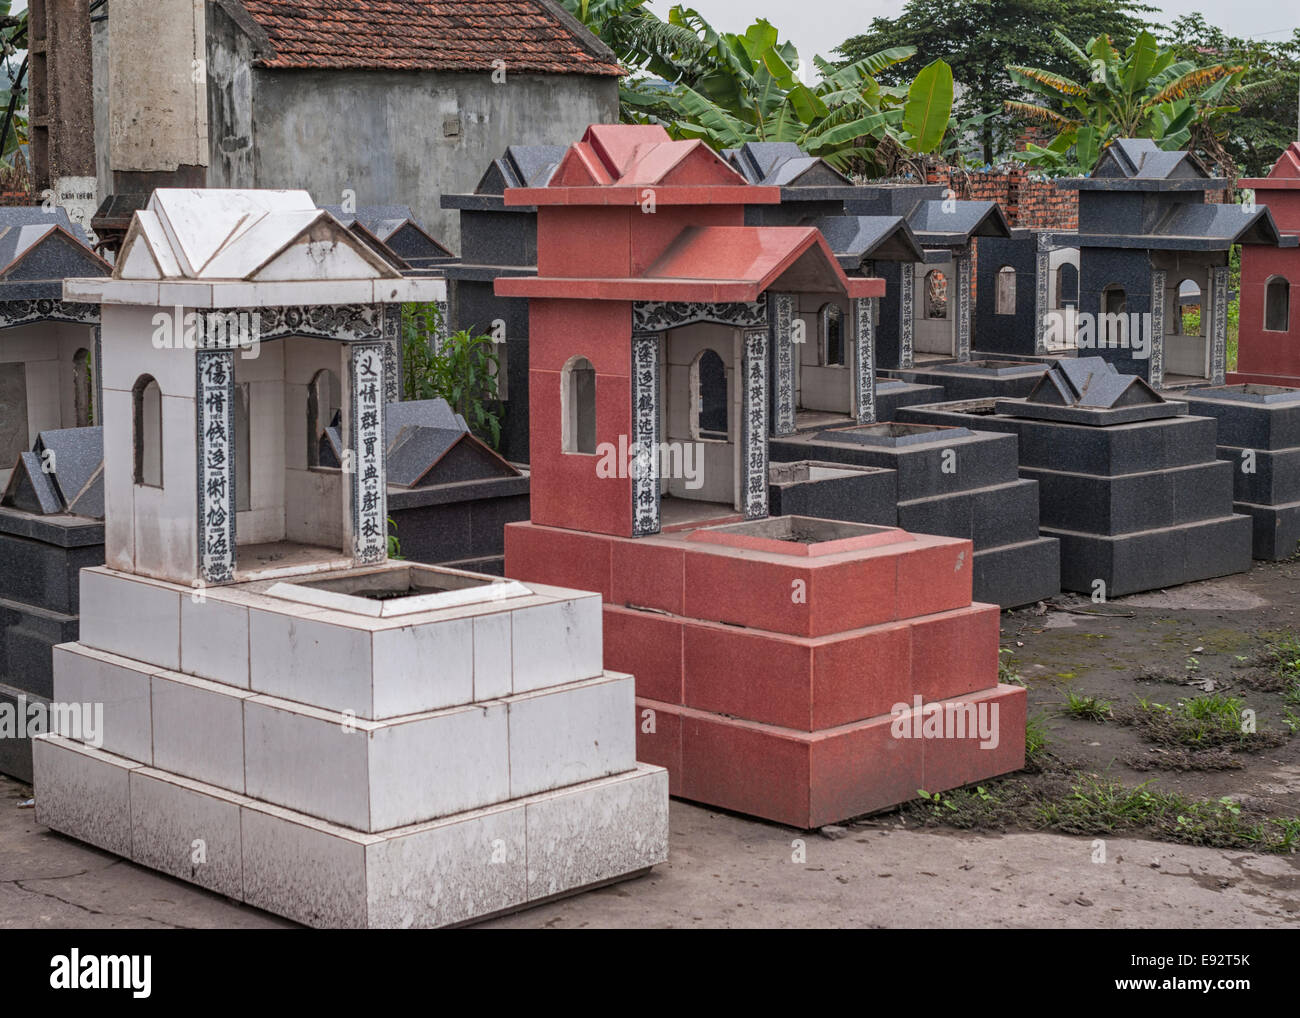 Vietnam Red River Delta: Display at shop of tombs for sale. Stock Photo